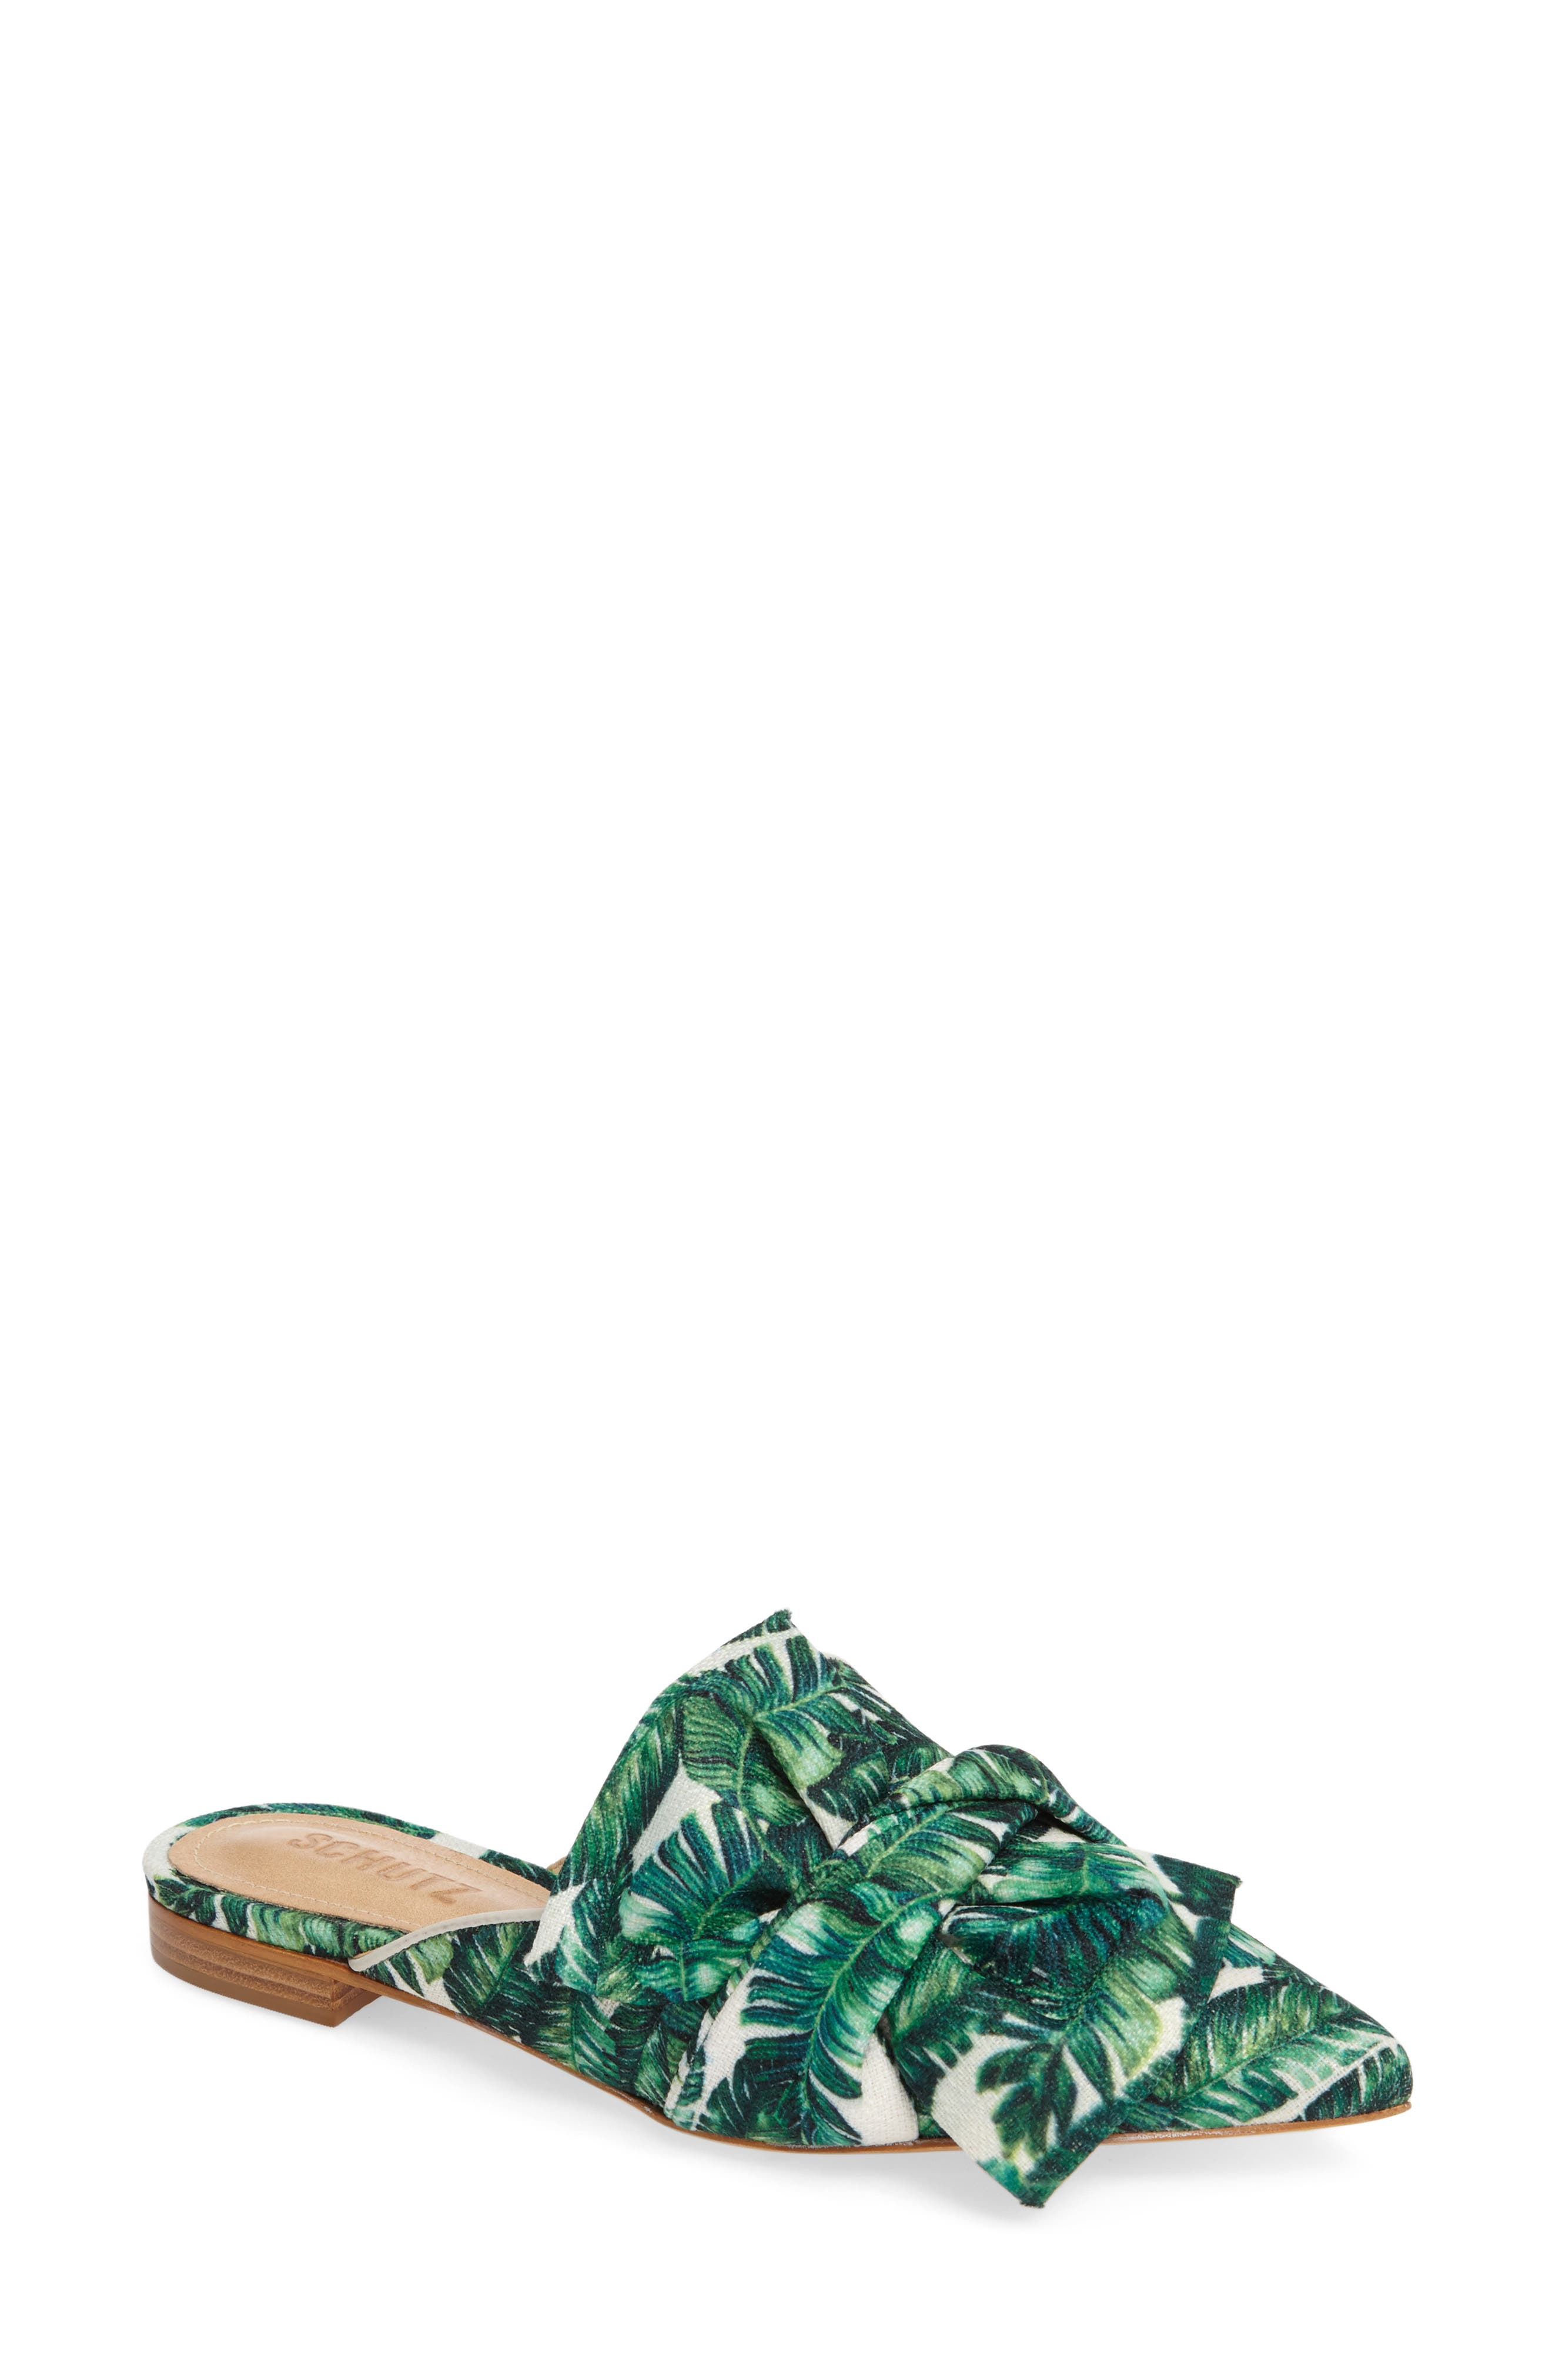 Main Image - Schutz D'Ana Knotted Loafer Mule (Women)